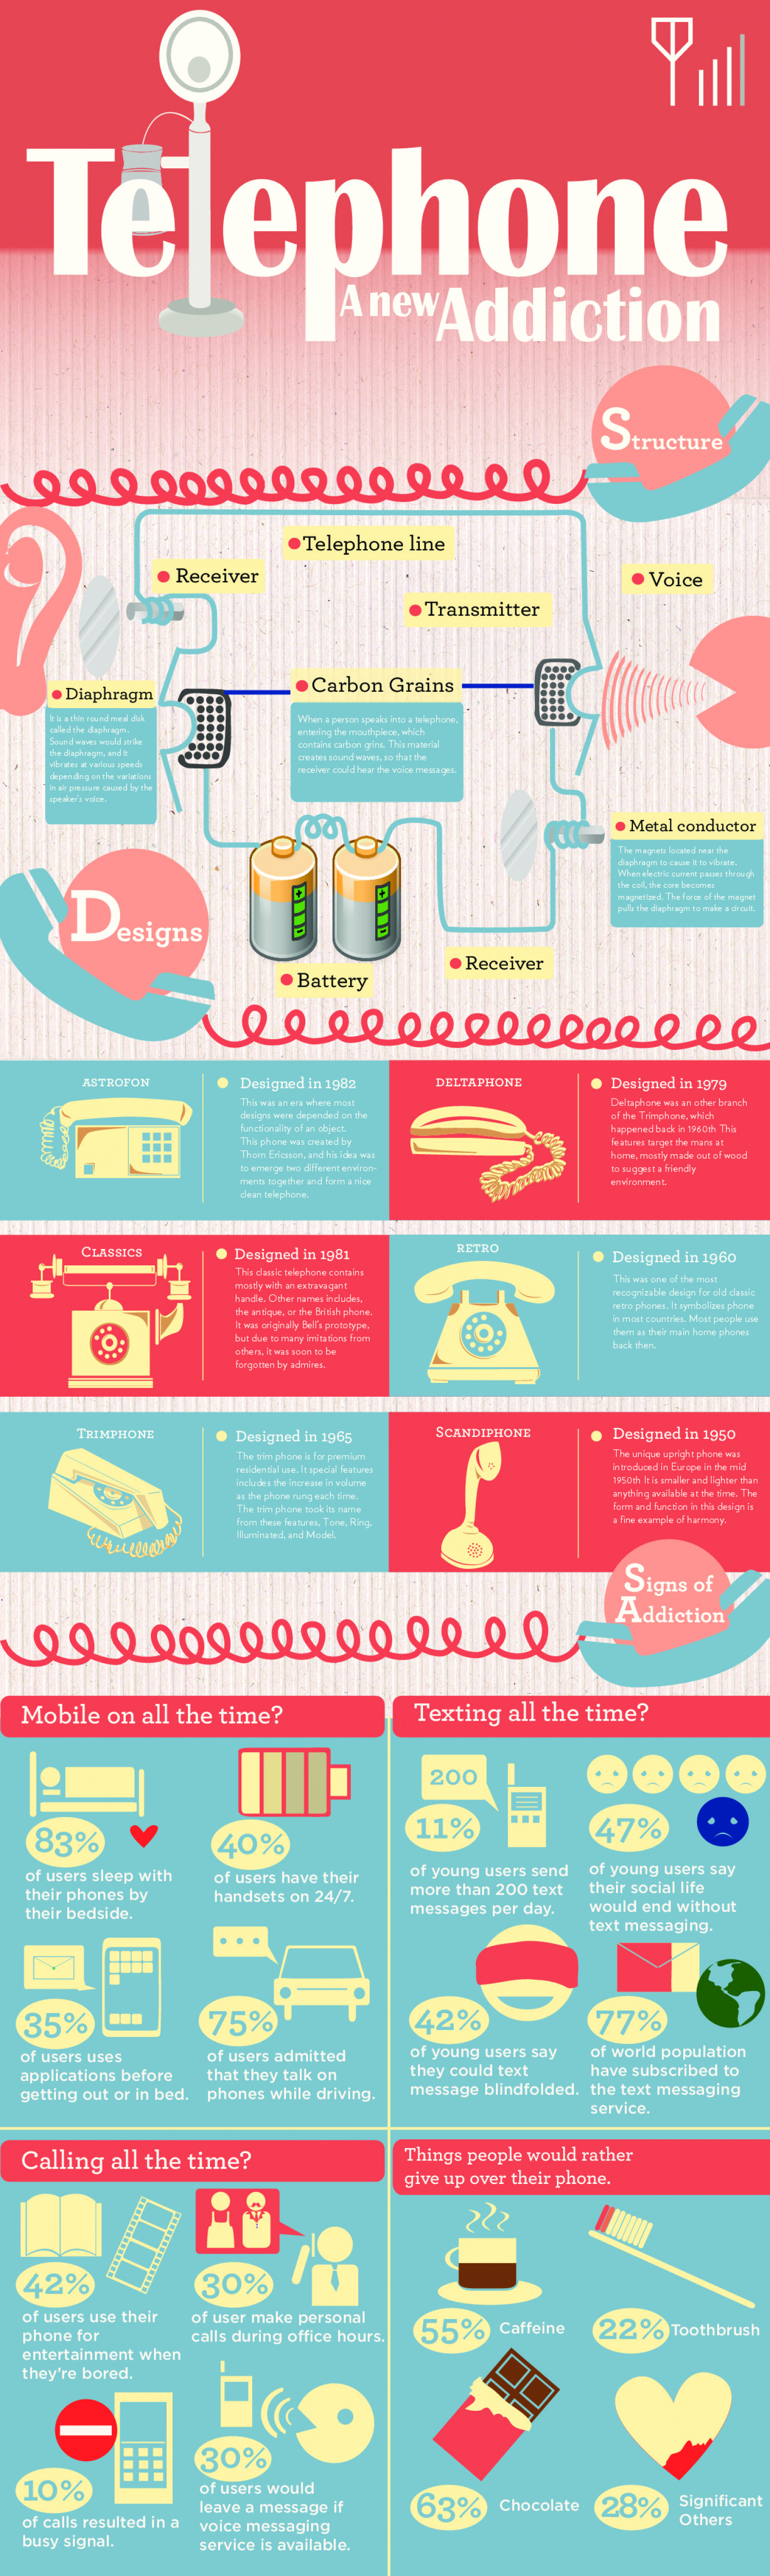 Telephone : A new Addiction Infographic